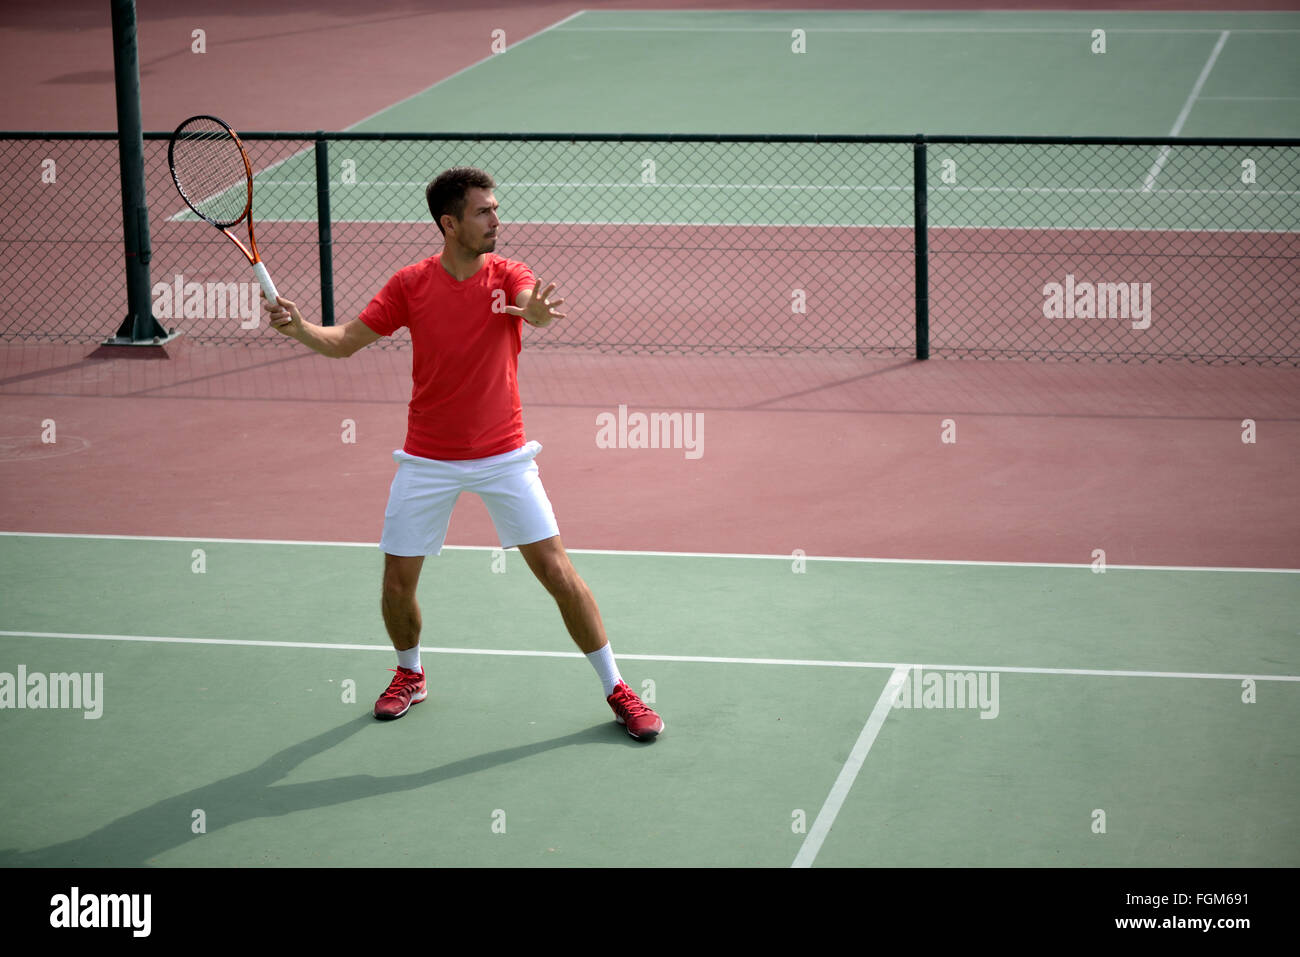 Male tennis player practice in tennis court in Dubai. - Stock Image